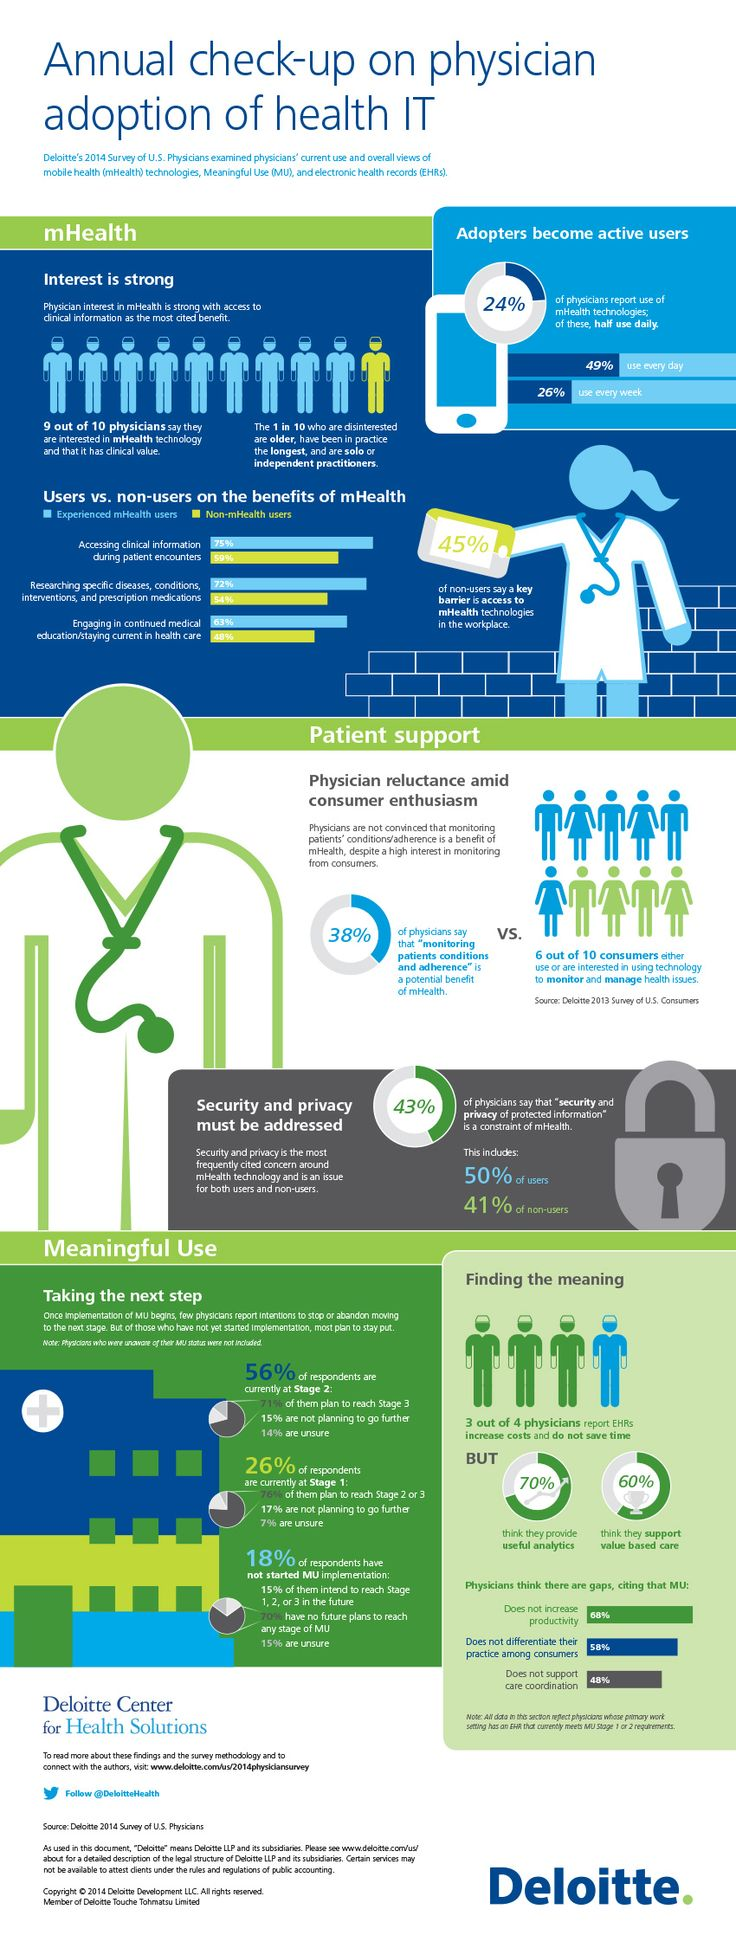 Annual check-up physician adoption of #HealthIT